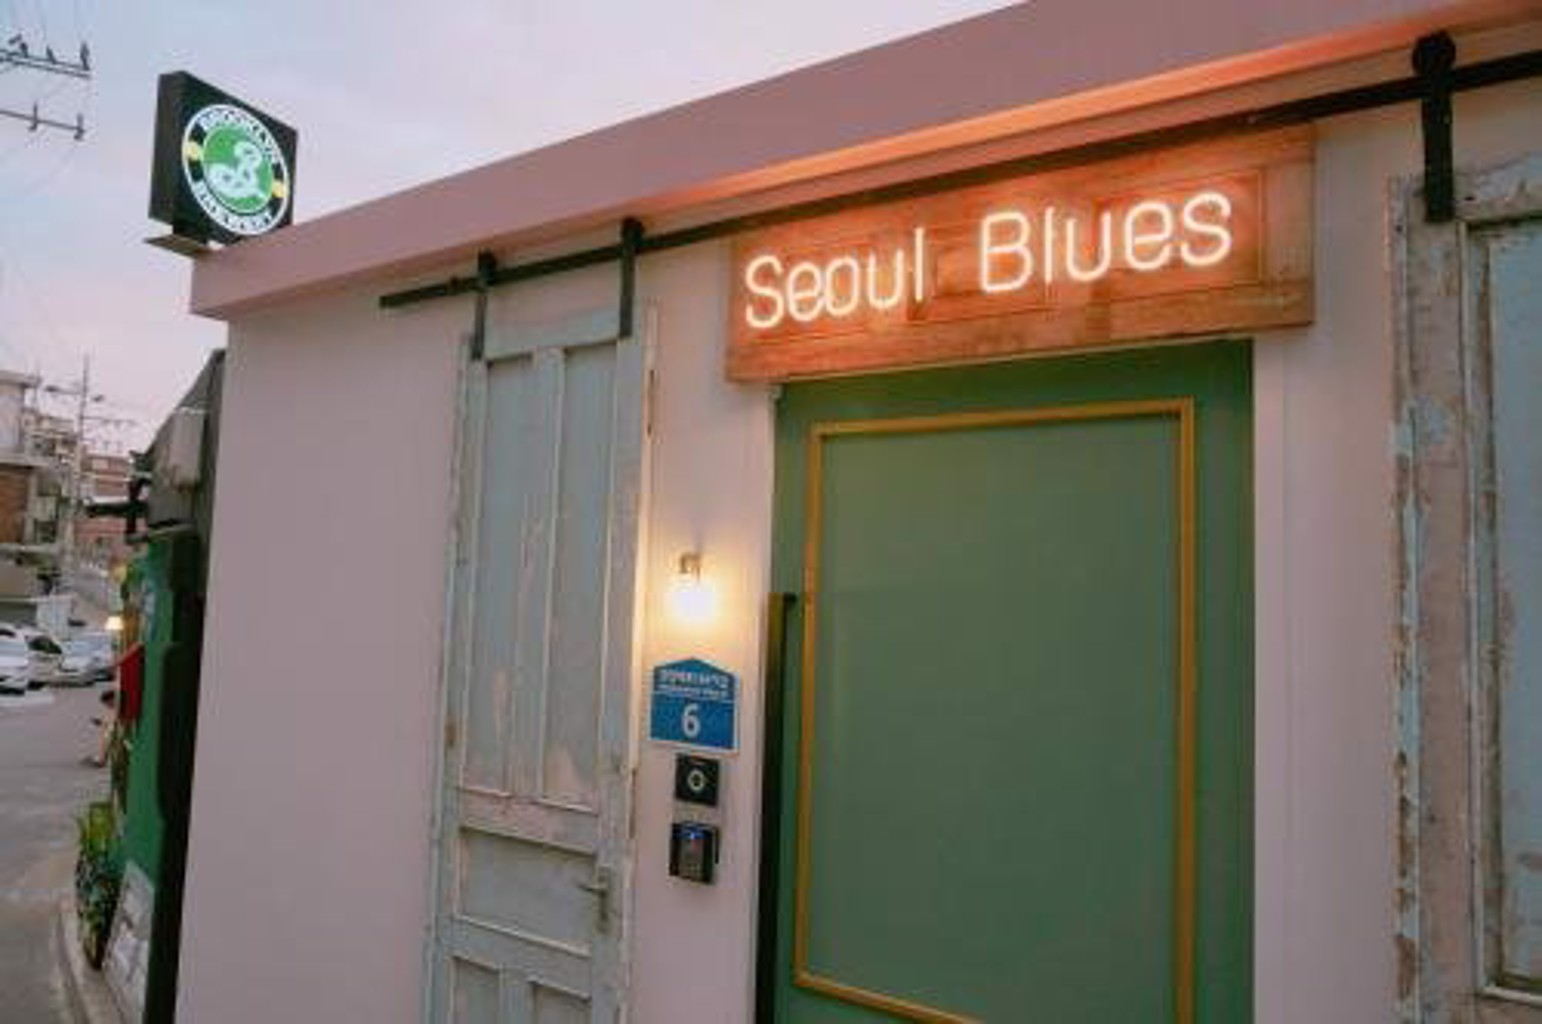 Gallery image of Seoul Blues